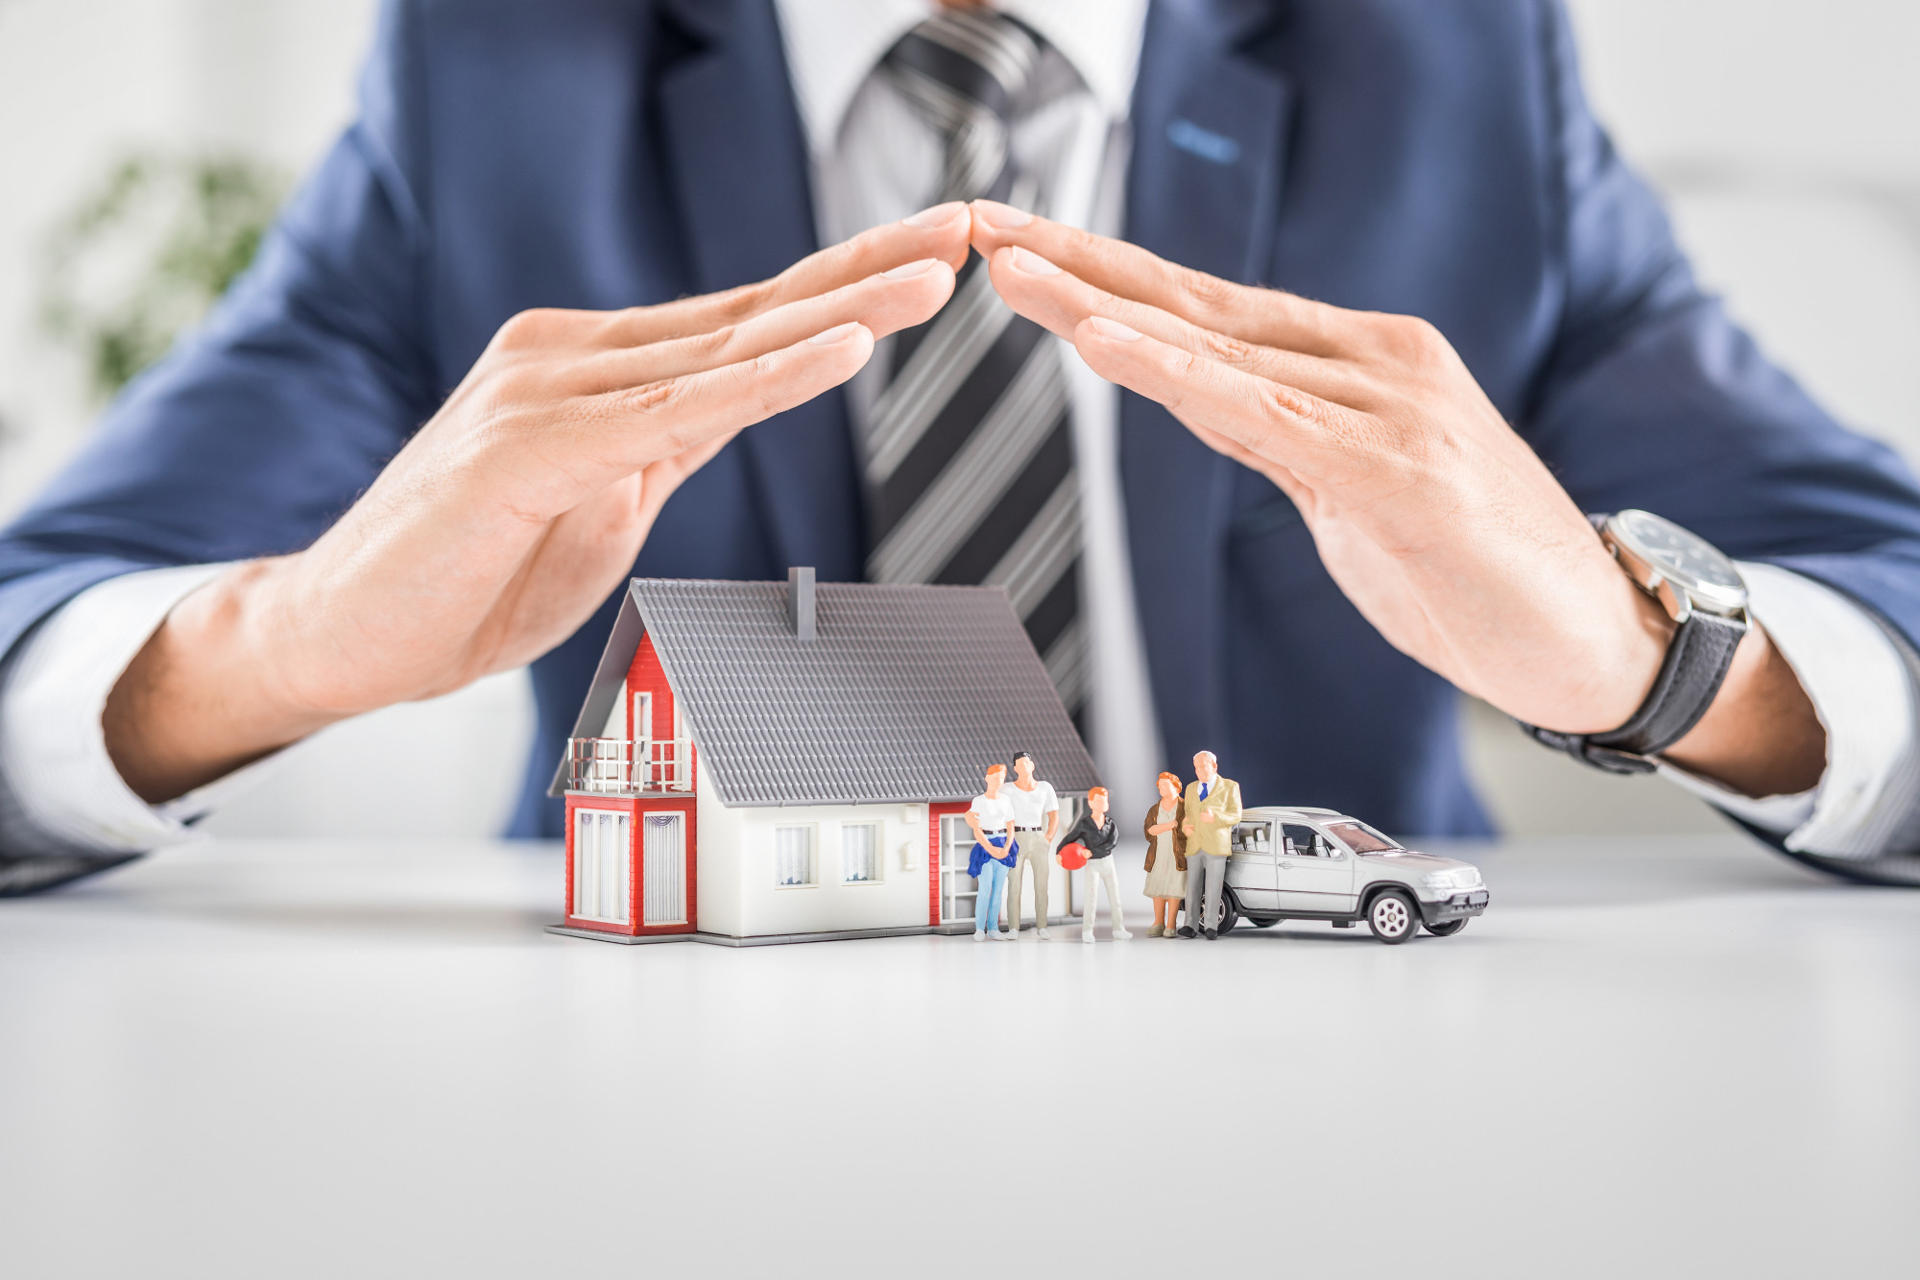 insurance broker with hands covering model house